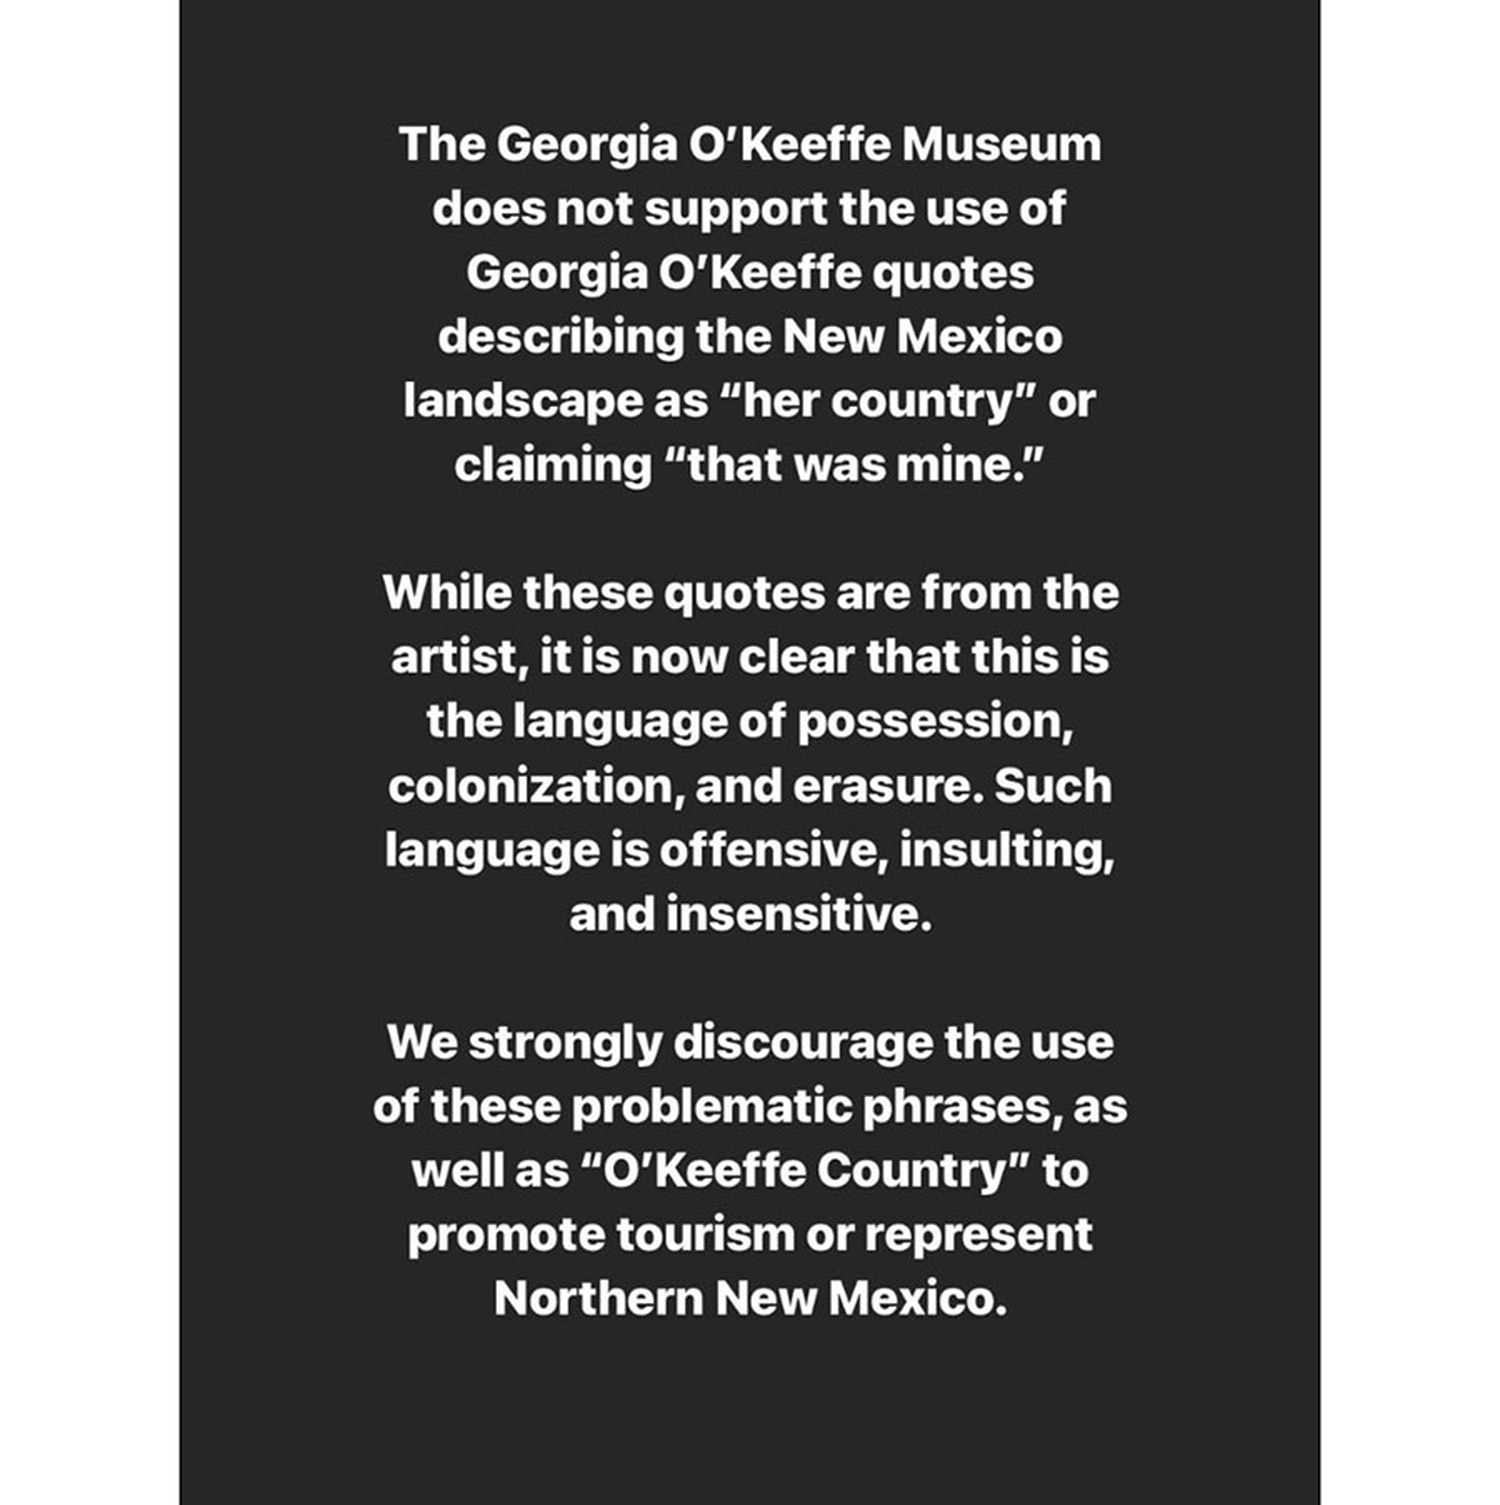 From the @okeeffemuseum Instagram account.